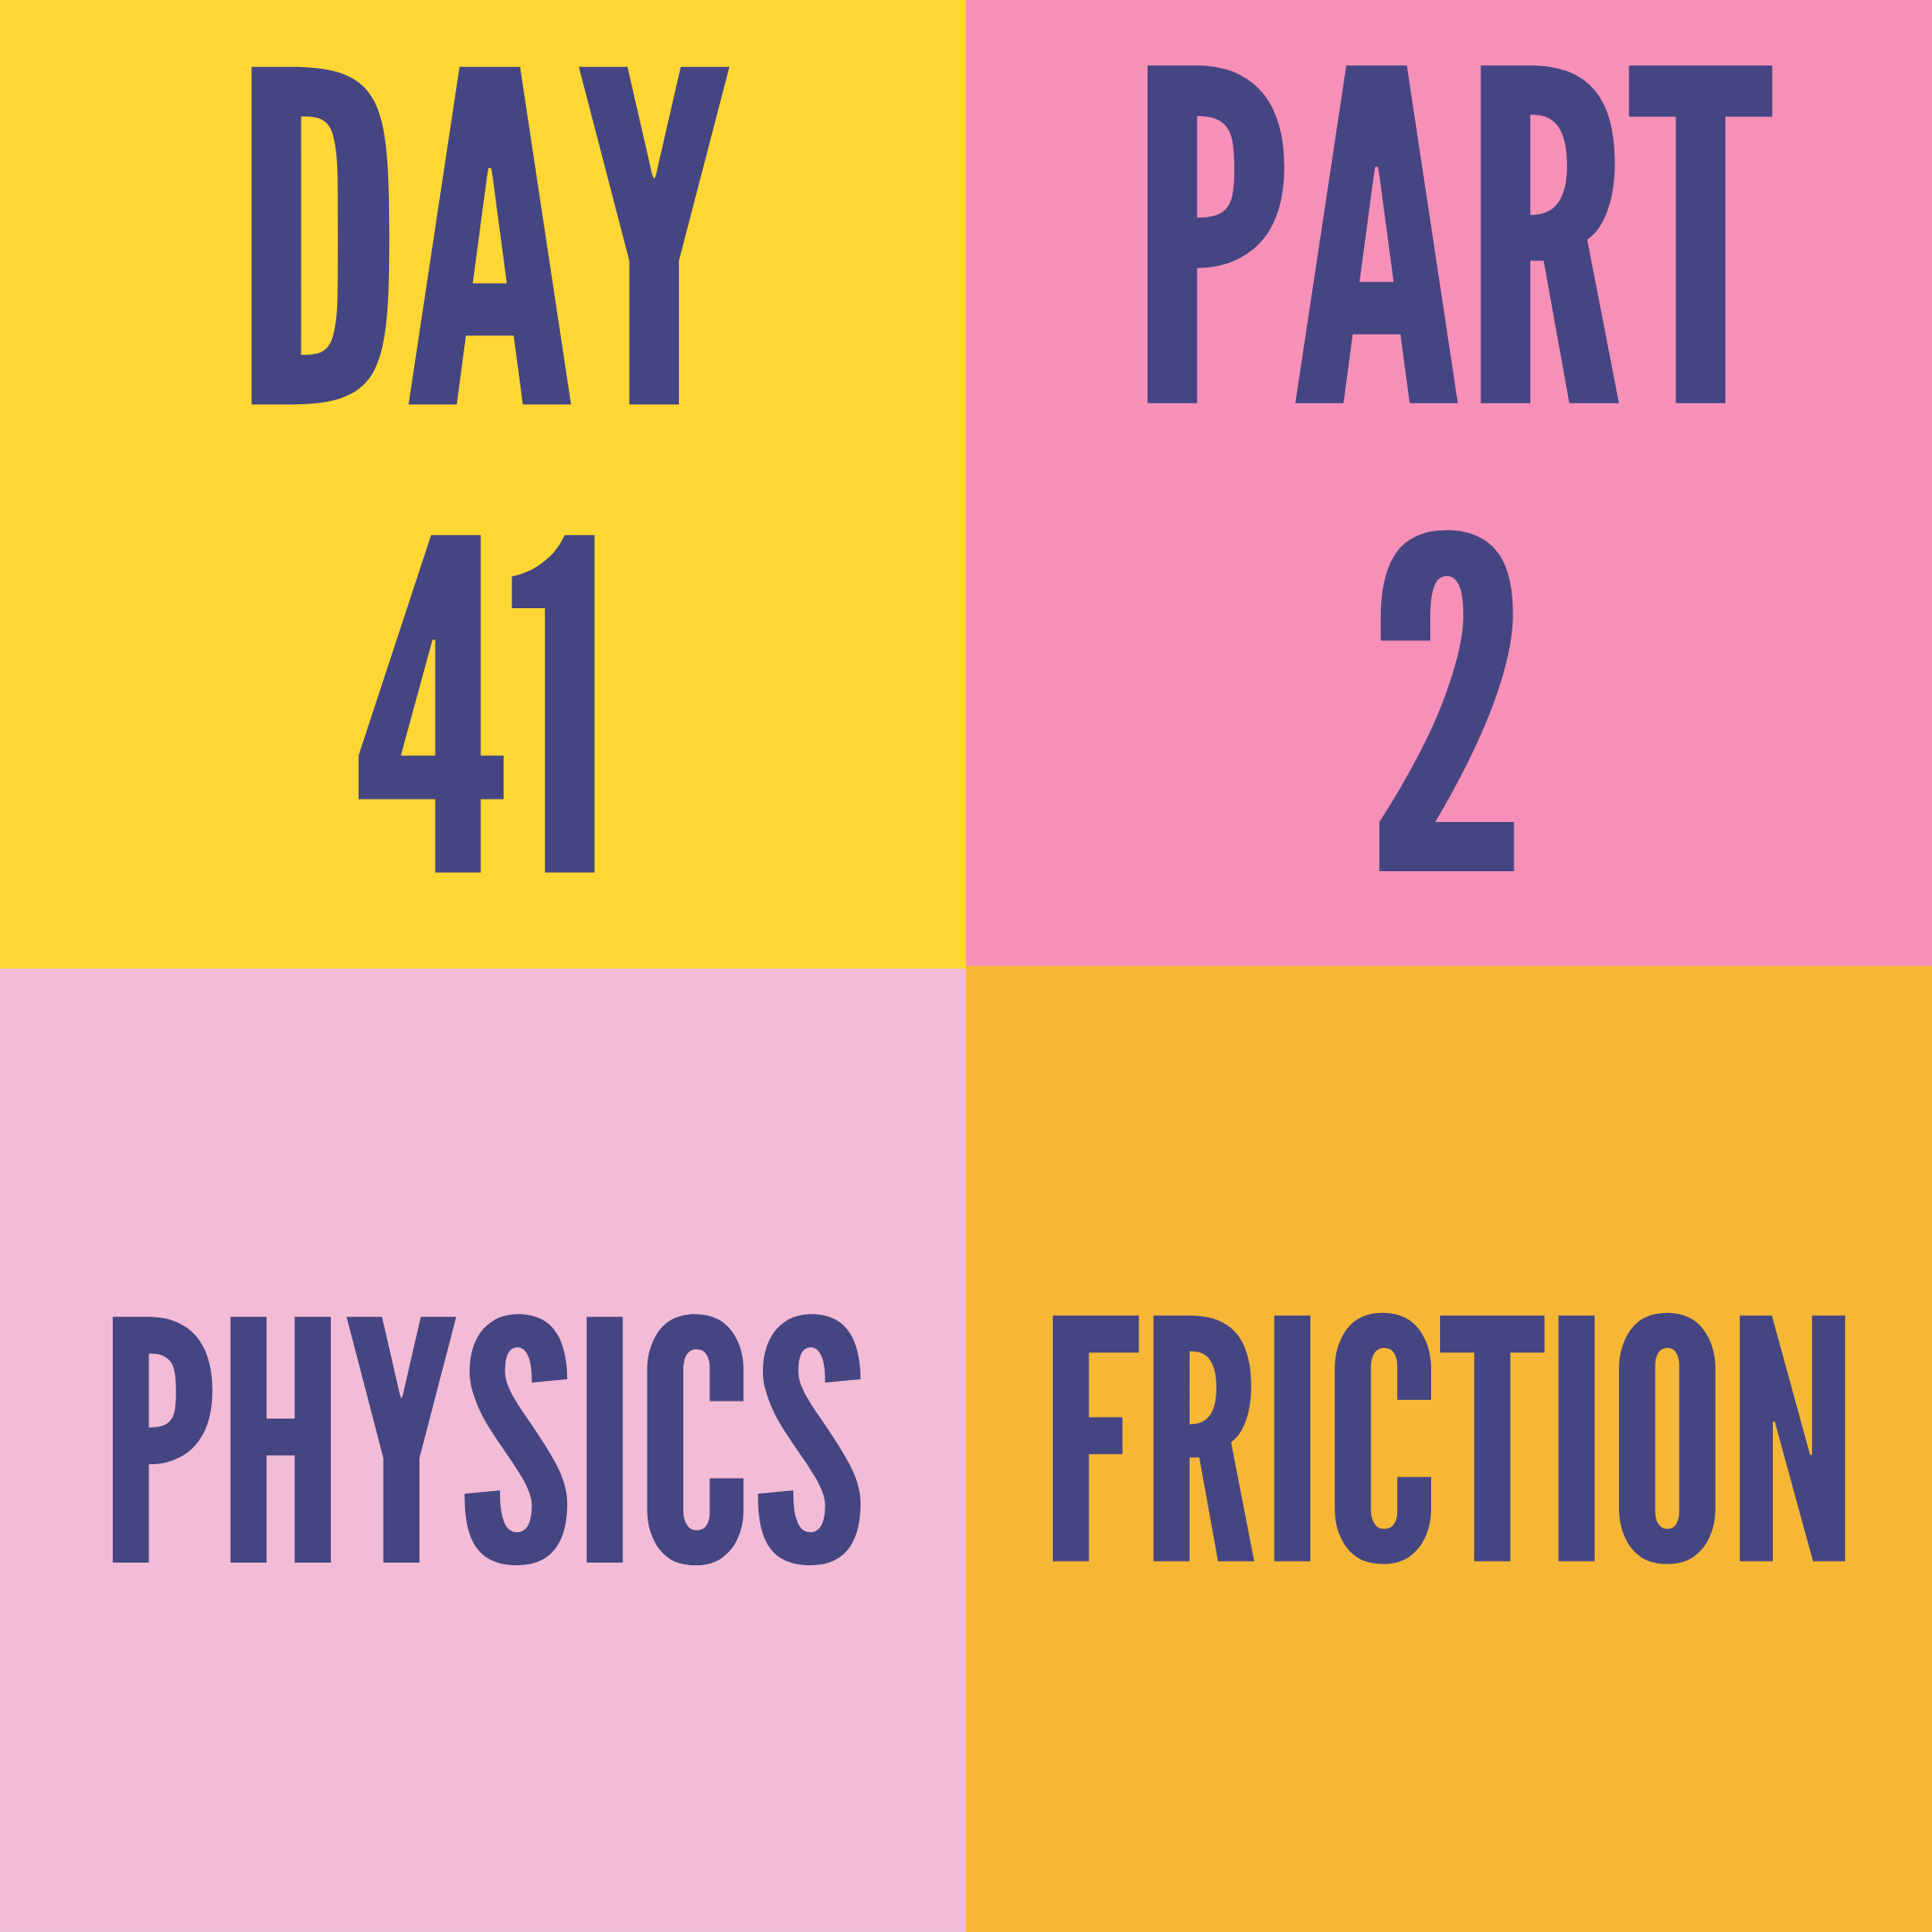 DAY-41 PART-2 FRICTION